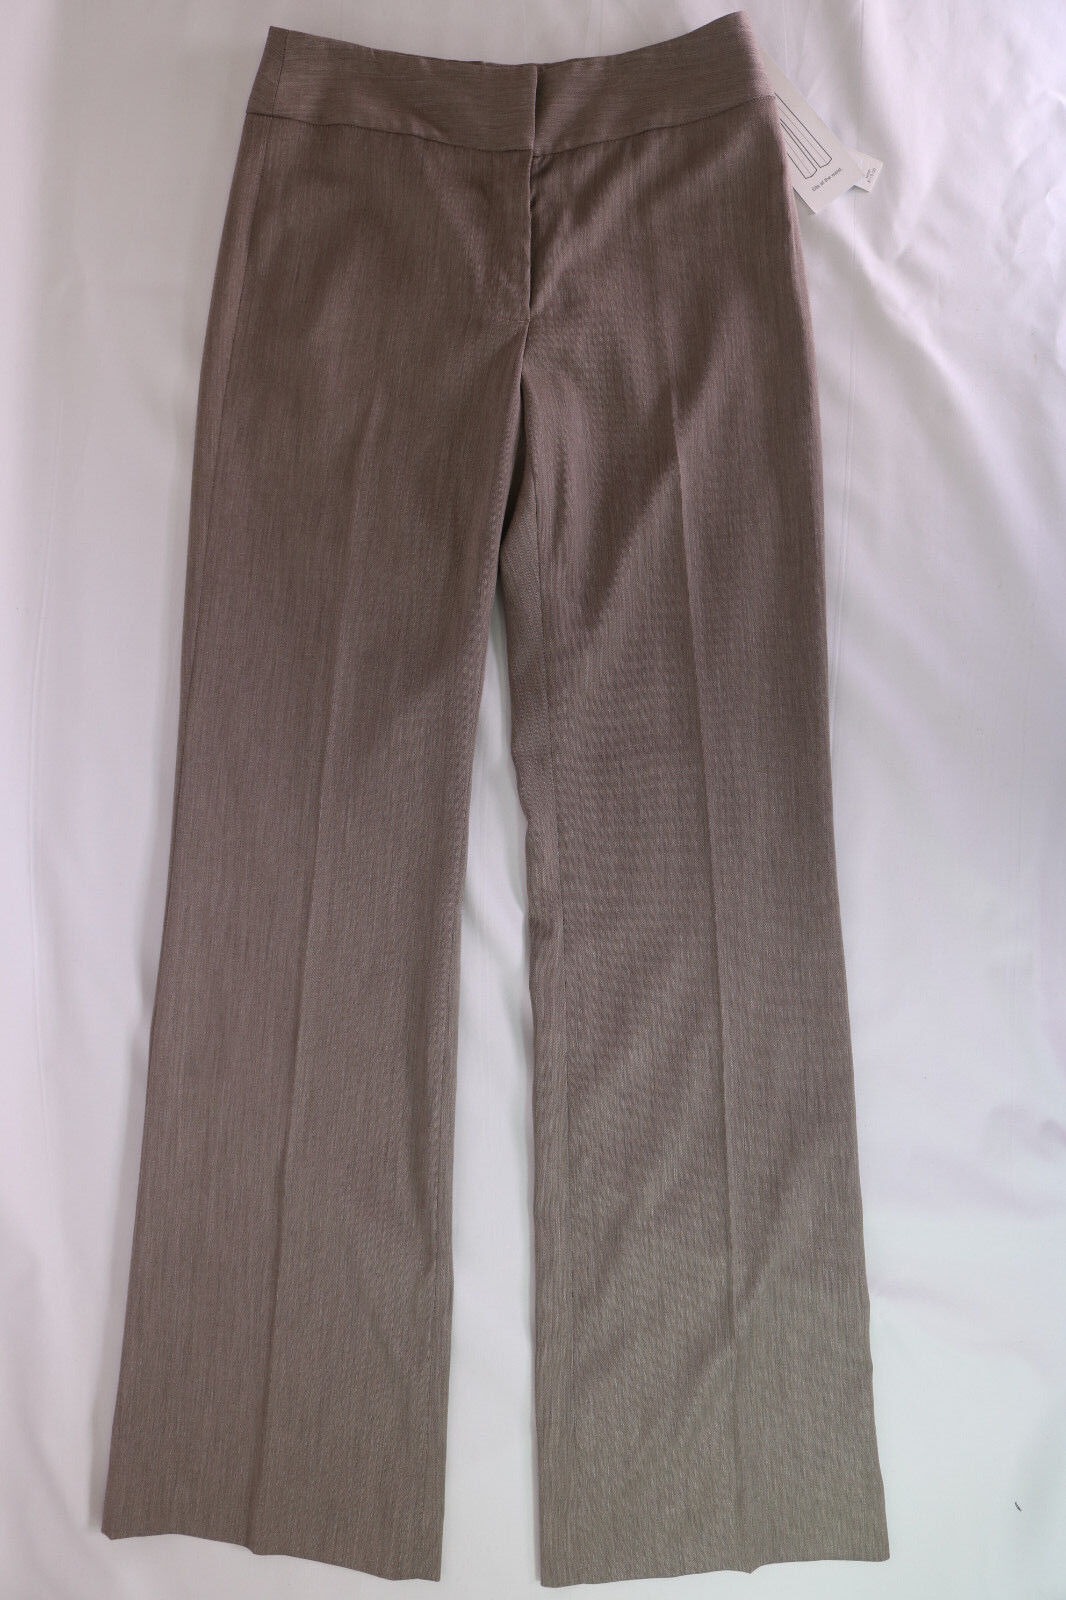 Antonio Melani Dress Pants Cocoa Brown Size 0 New NWT  119